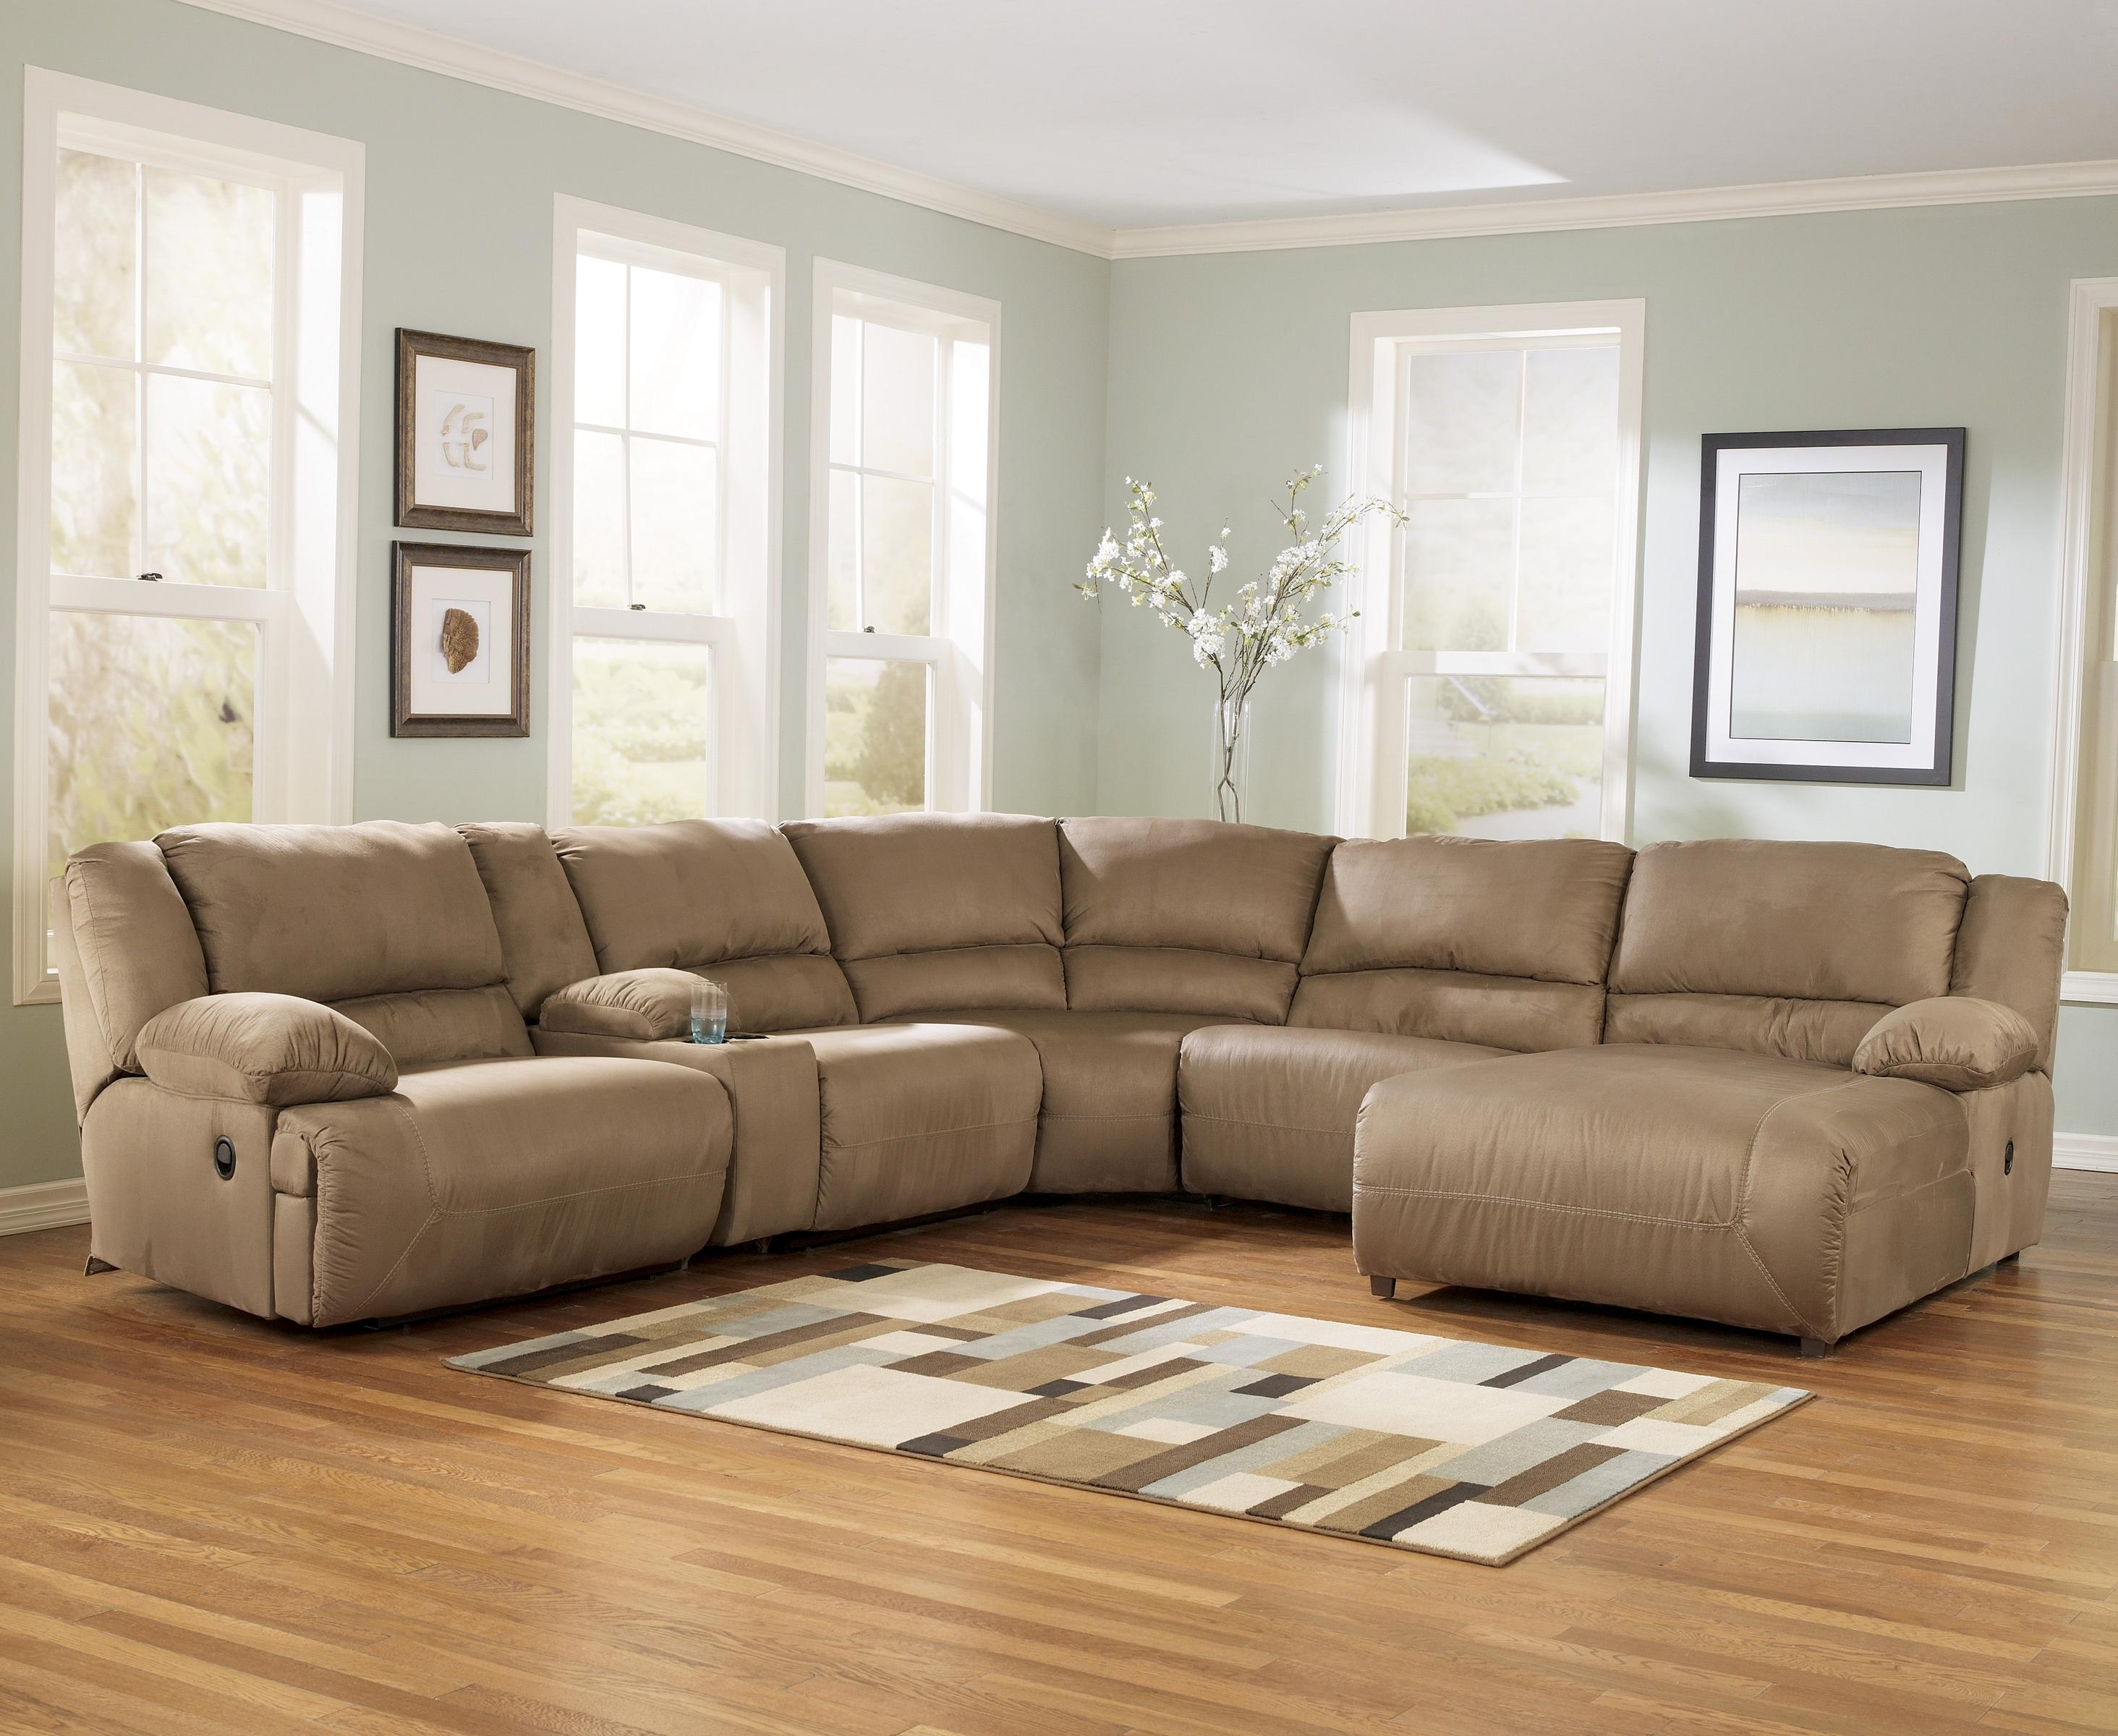 6 Piece Reclining Sectional Sofa | Baci Living Room regarding Denali Charcoal Grey 6 Piece Reclining Sectionals With 2 Power Headrests (Image 3 of 30)